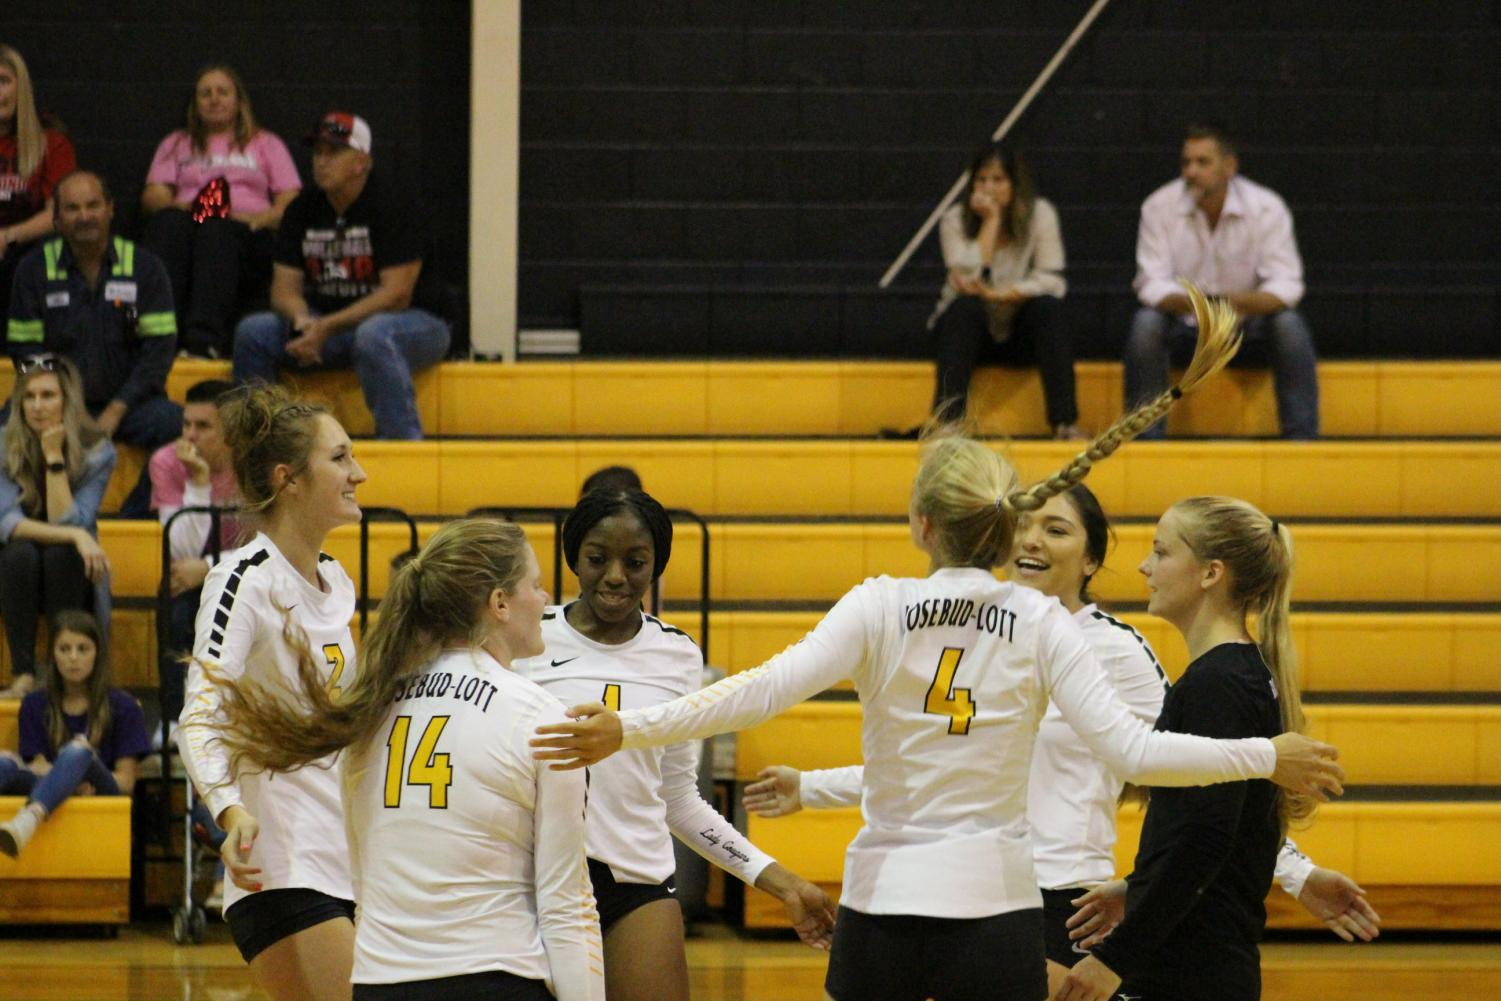 The Lady Cougars link arms during a match.